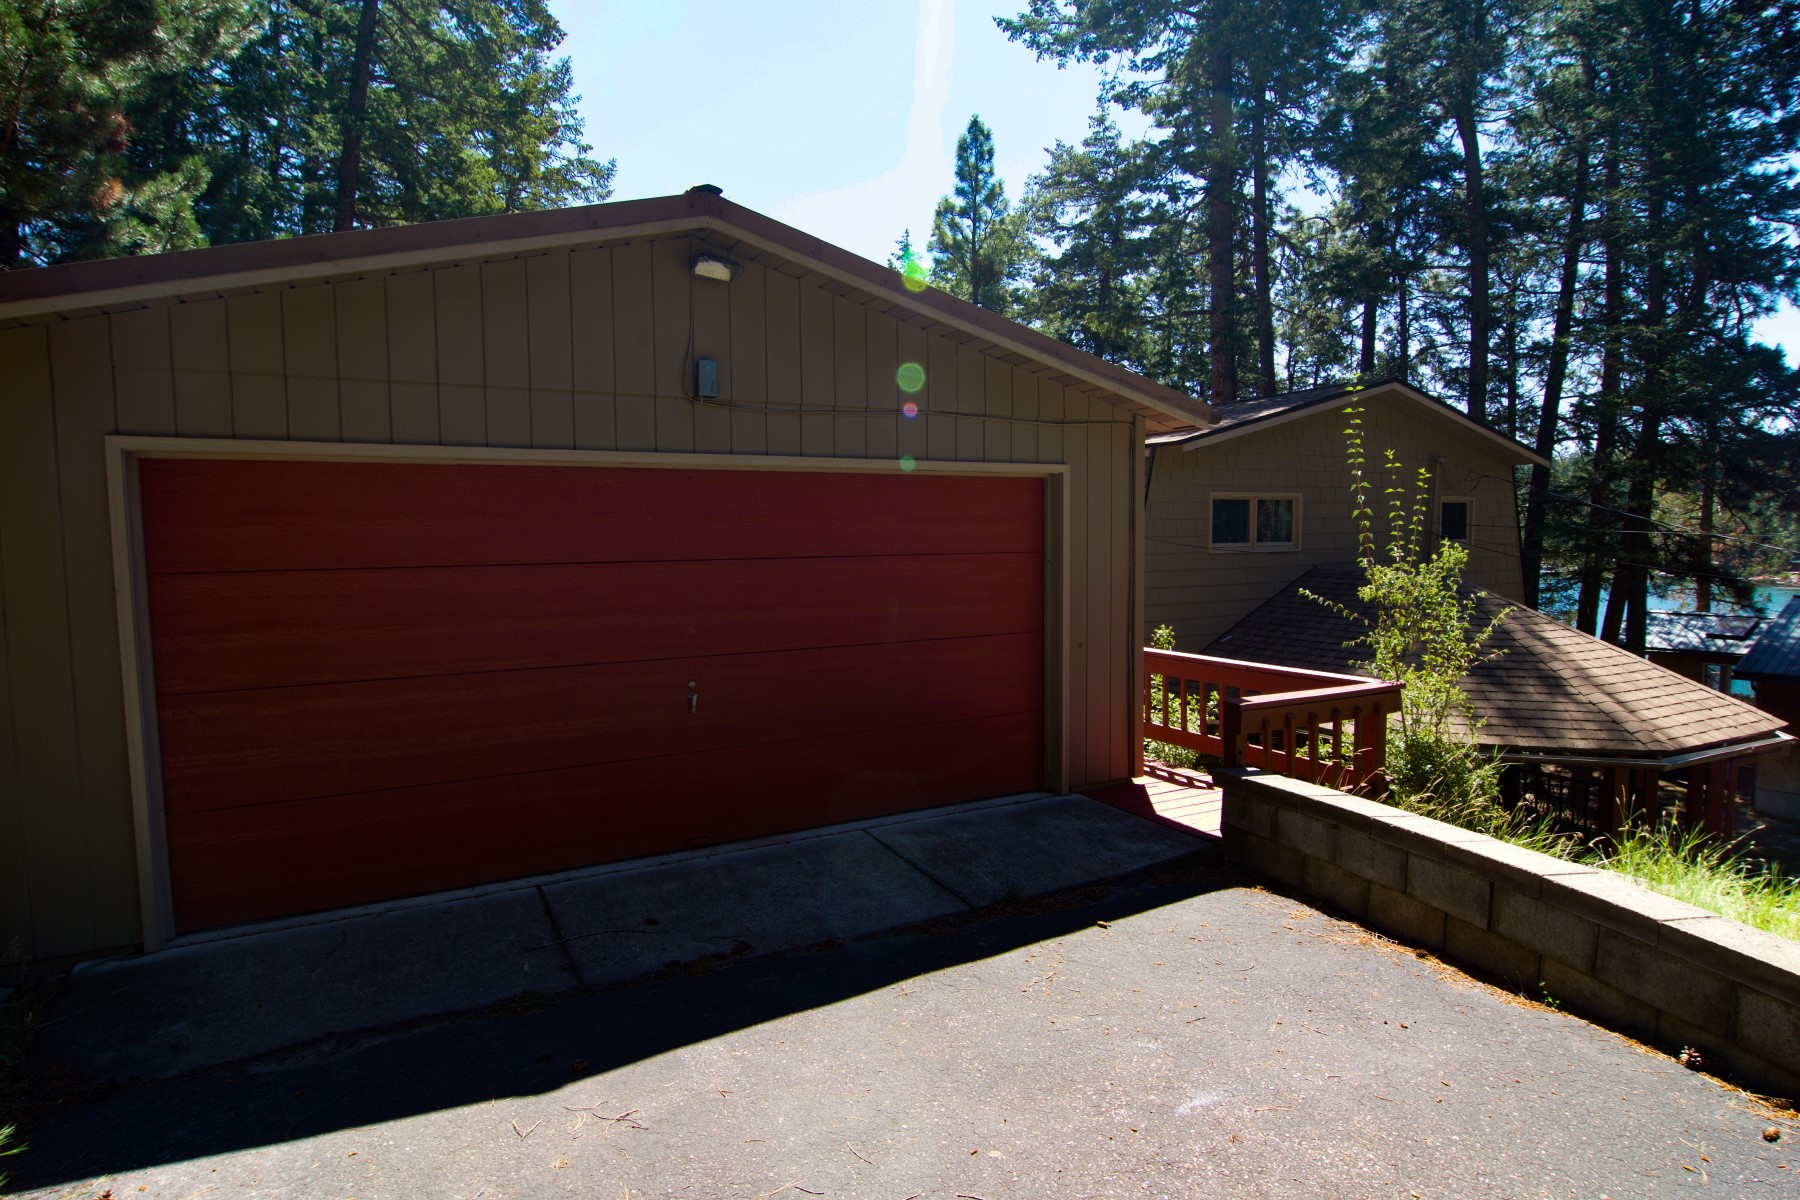 Additional photo for property listing at 34178 Yellow Pine Ln , Polson, MT 59860 34178  Yellow Pine Ln Polson, Montana 59860 United States